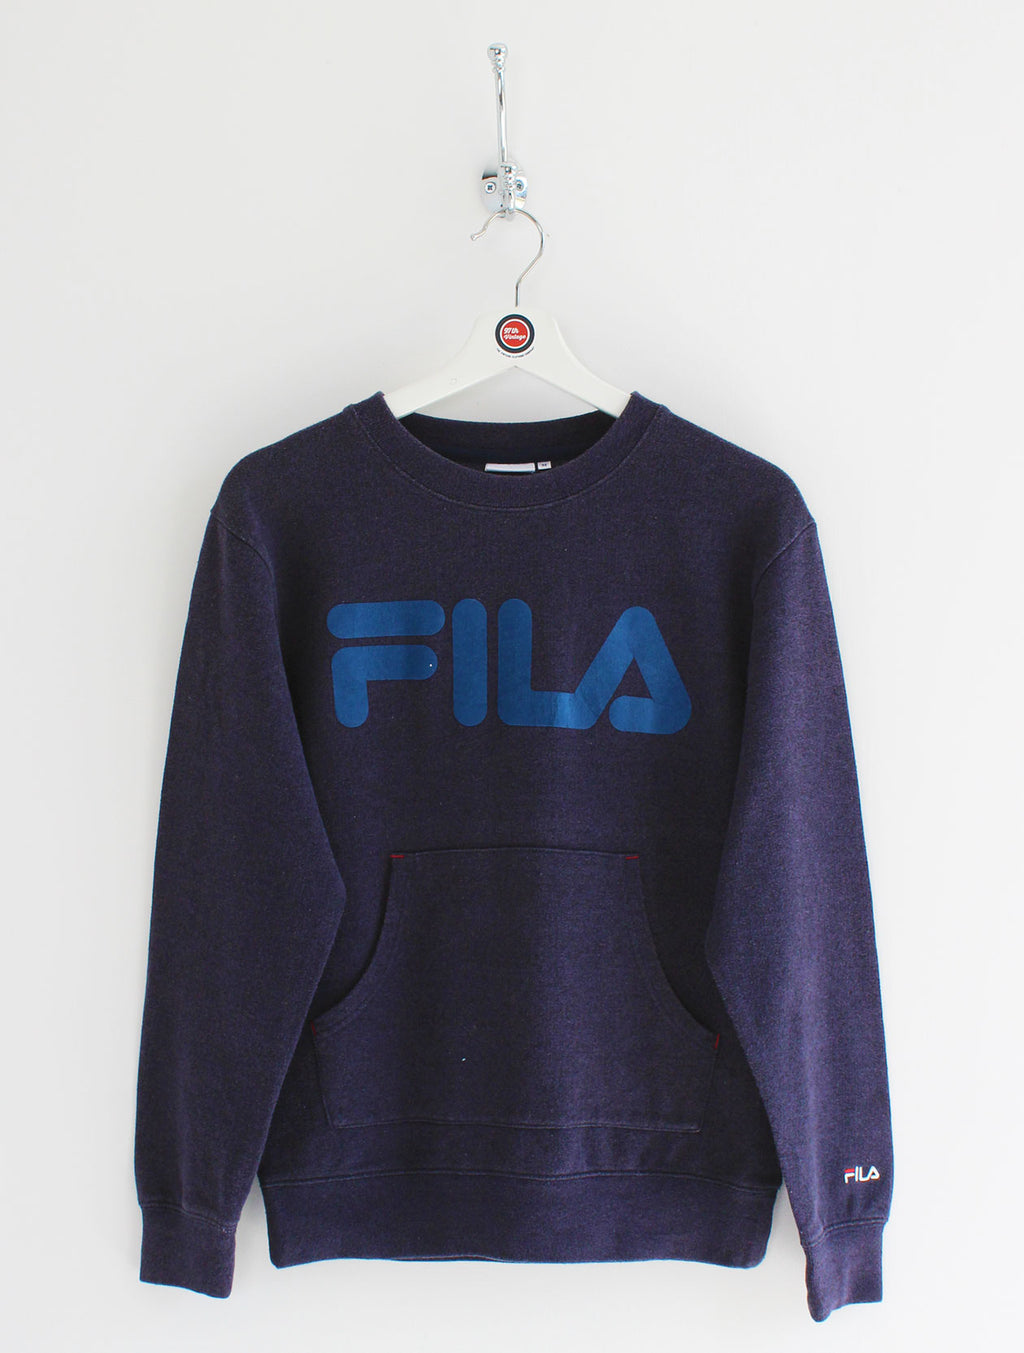 Women's Fila Sweatshirt (M)